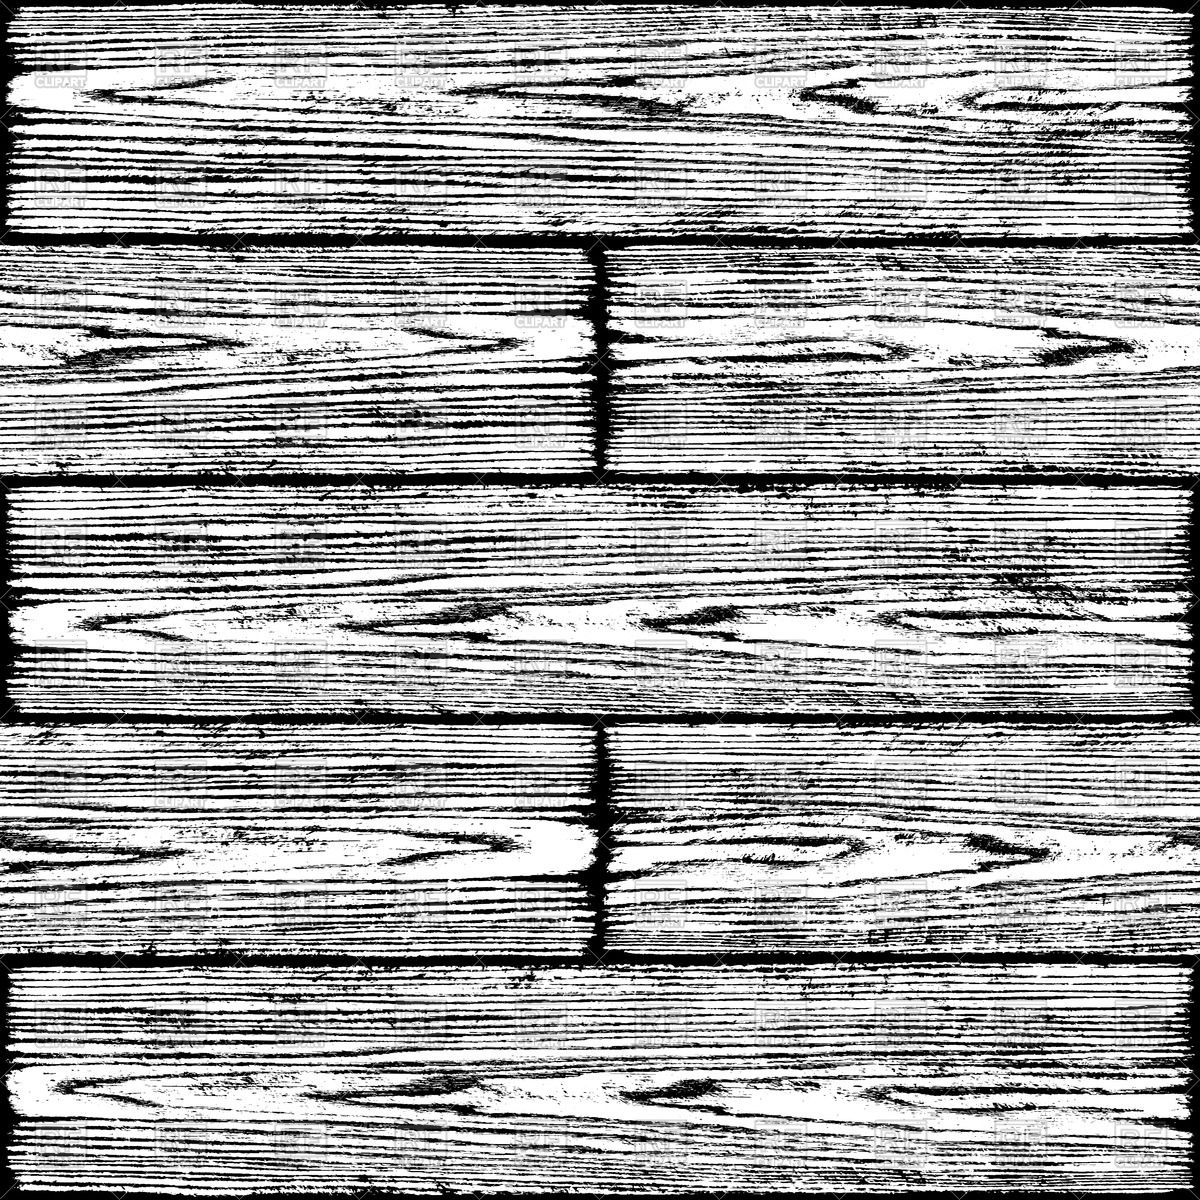 Horizontal wooden planks.